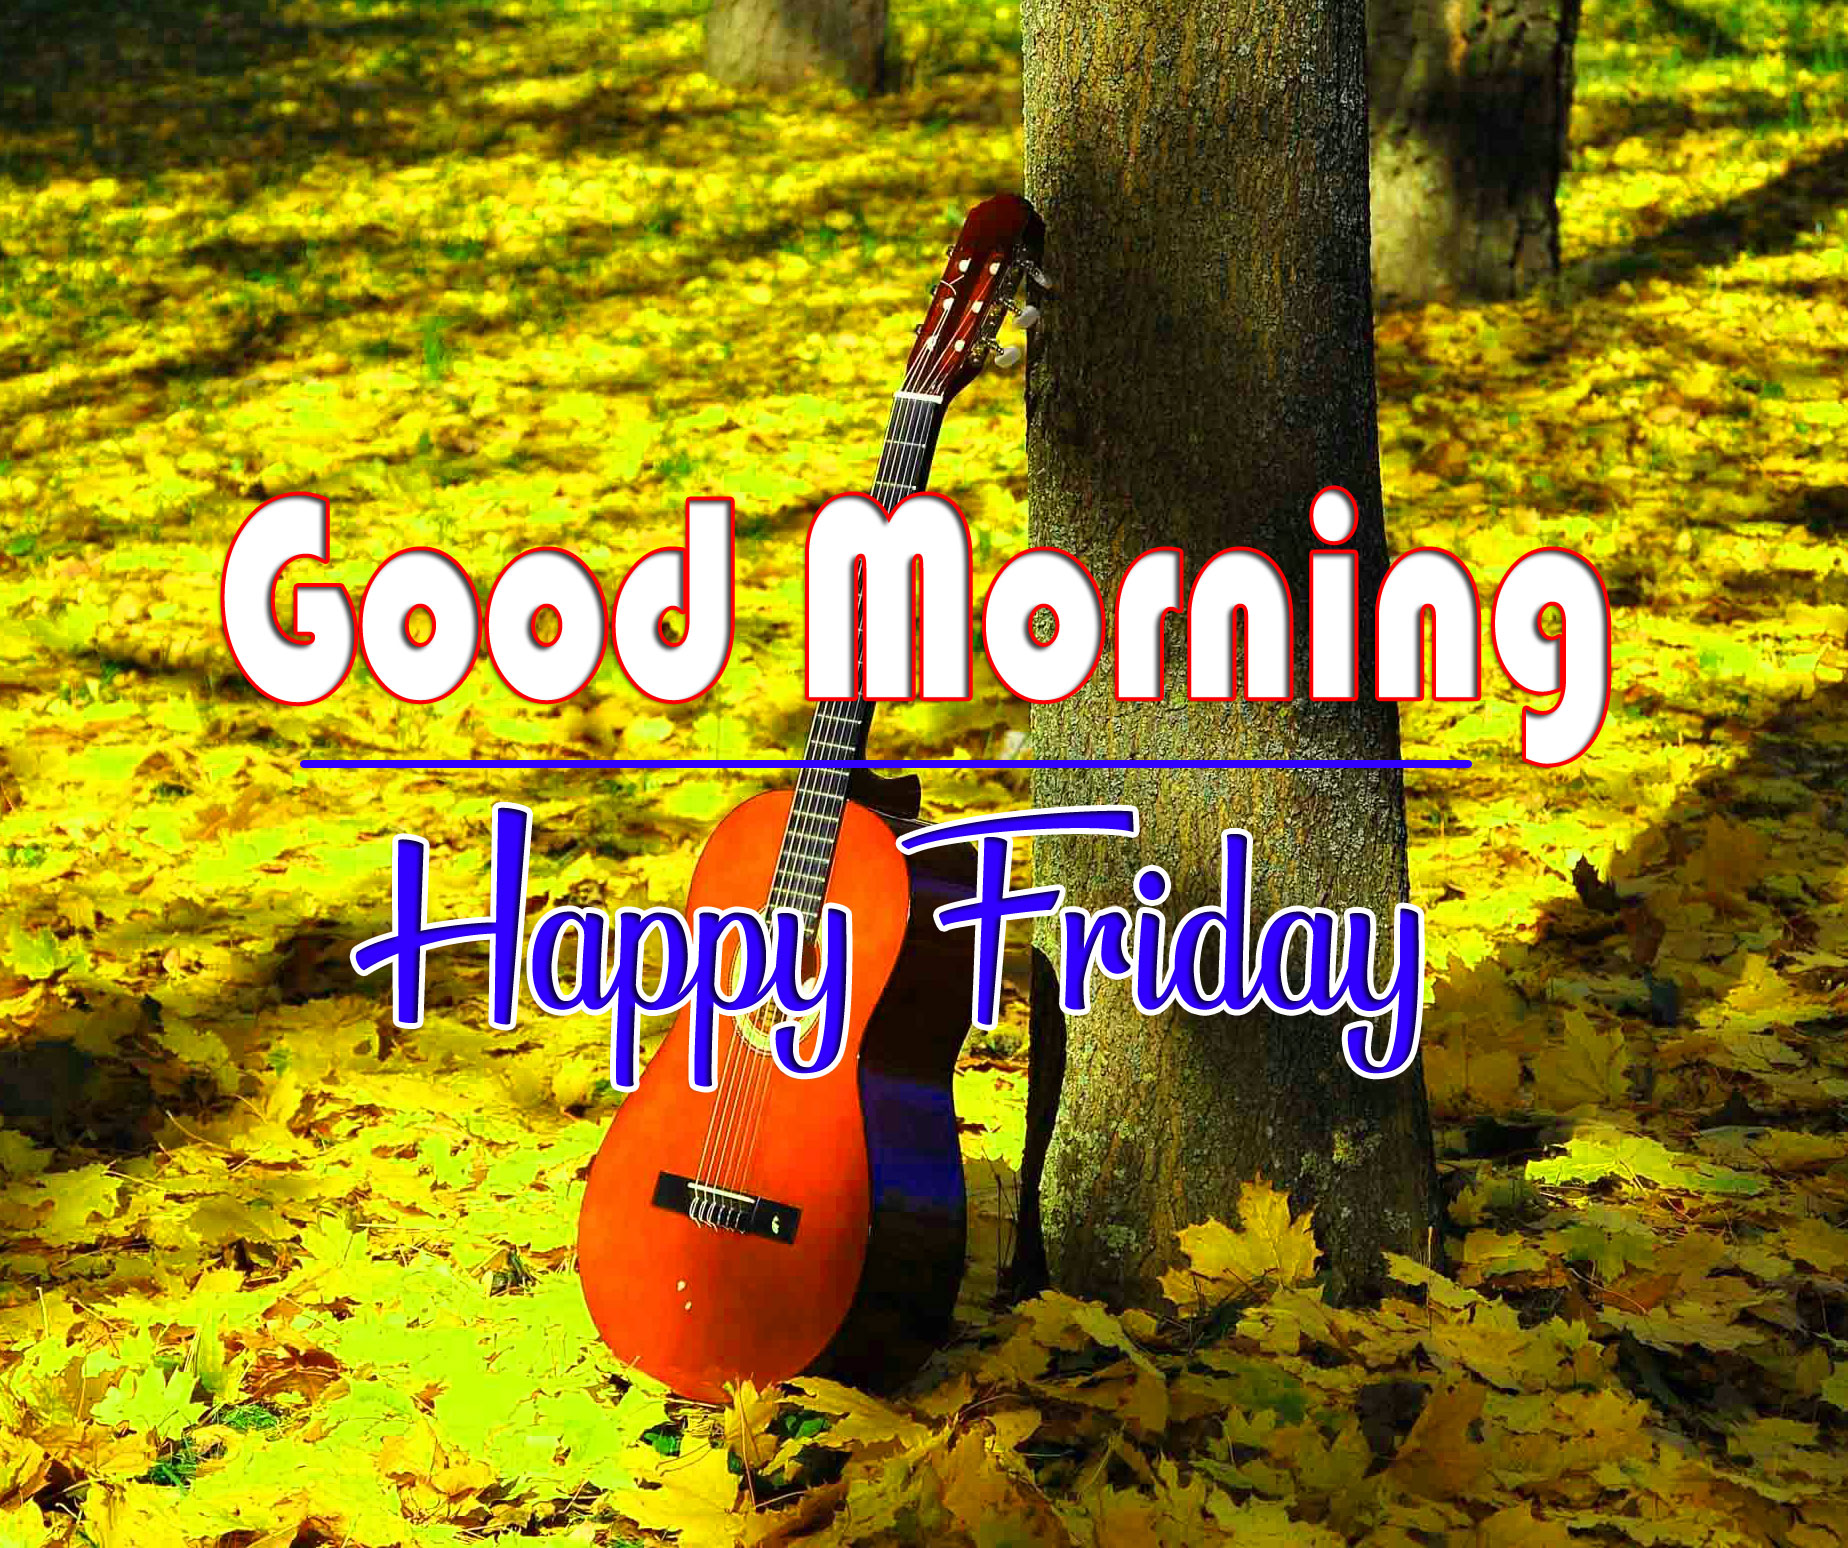 Free HD friday Good morning Wishes Images 3